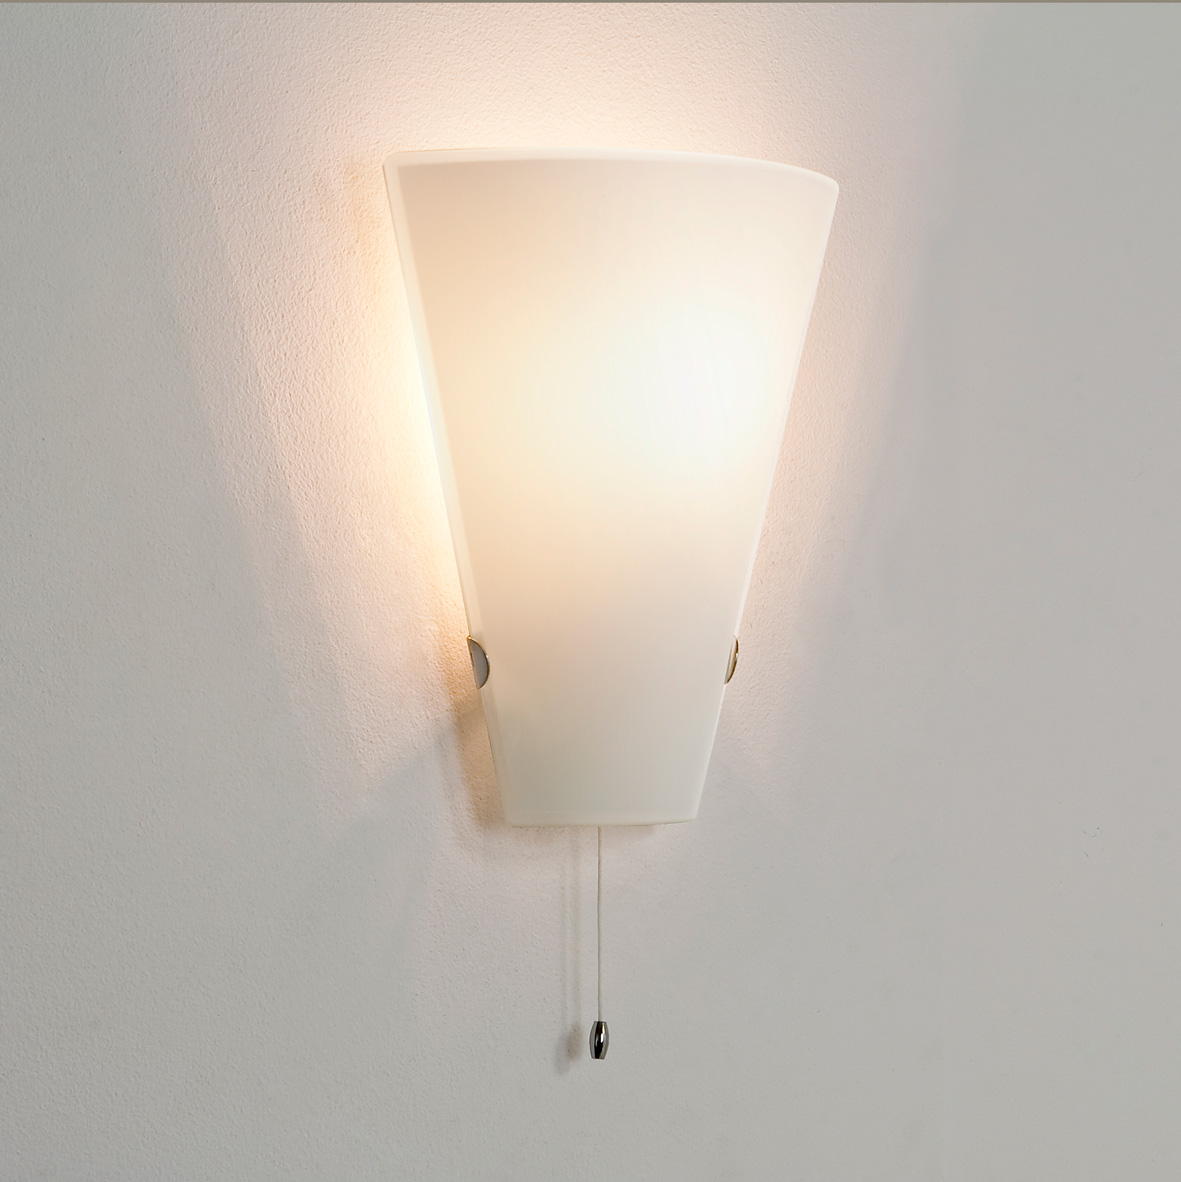 dimmable pull cord switch wall light 60W E14 lamp IP20 glass eBay - Wall lights, LED bathroom ...